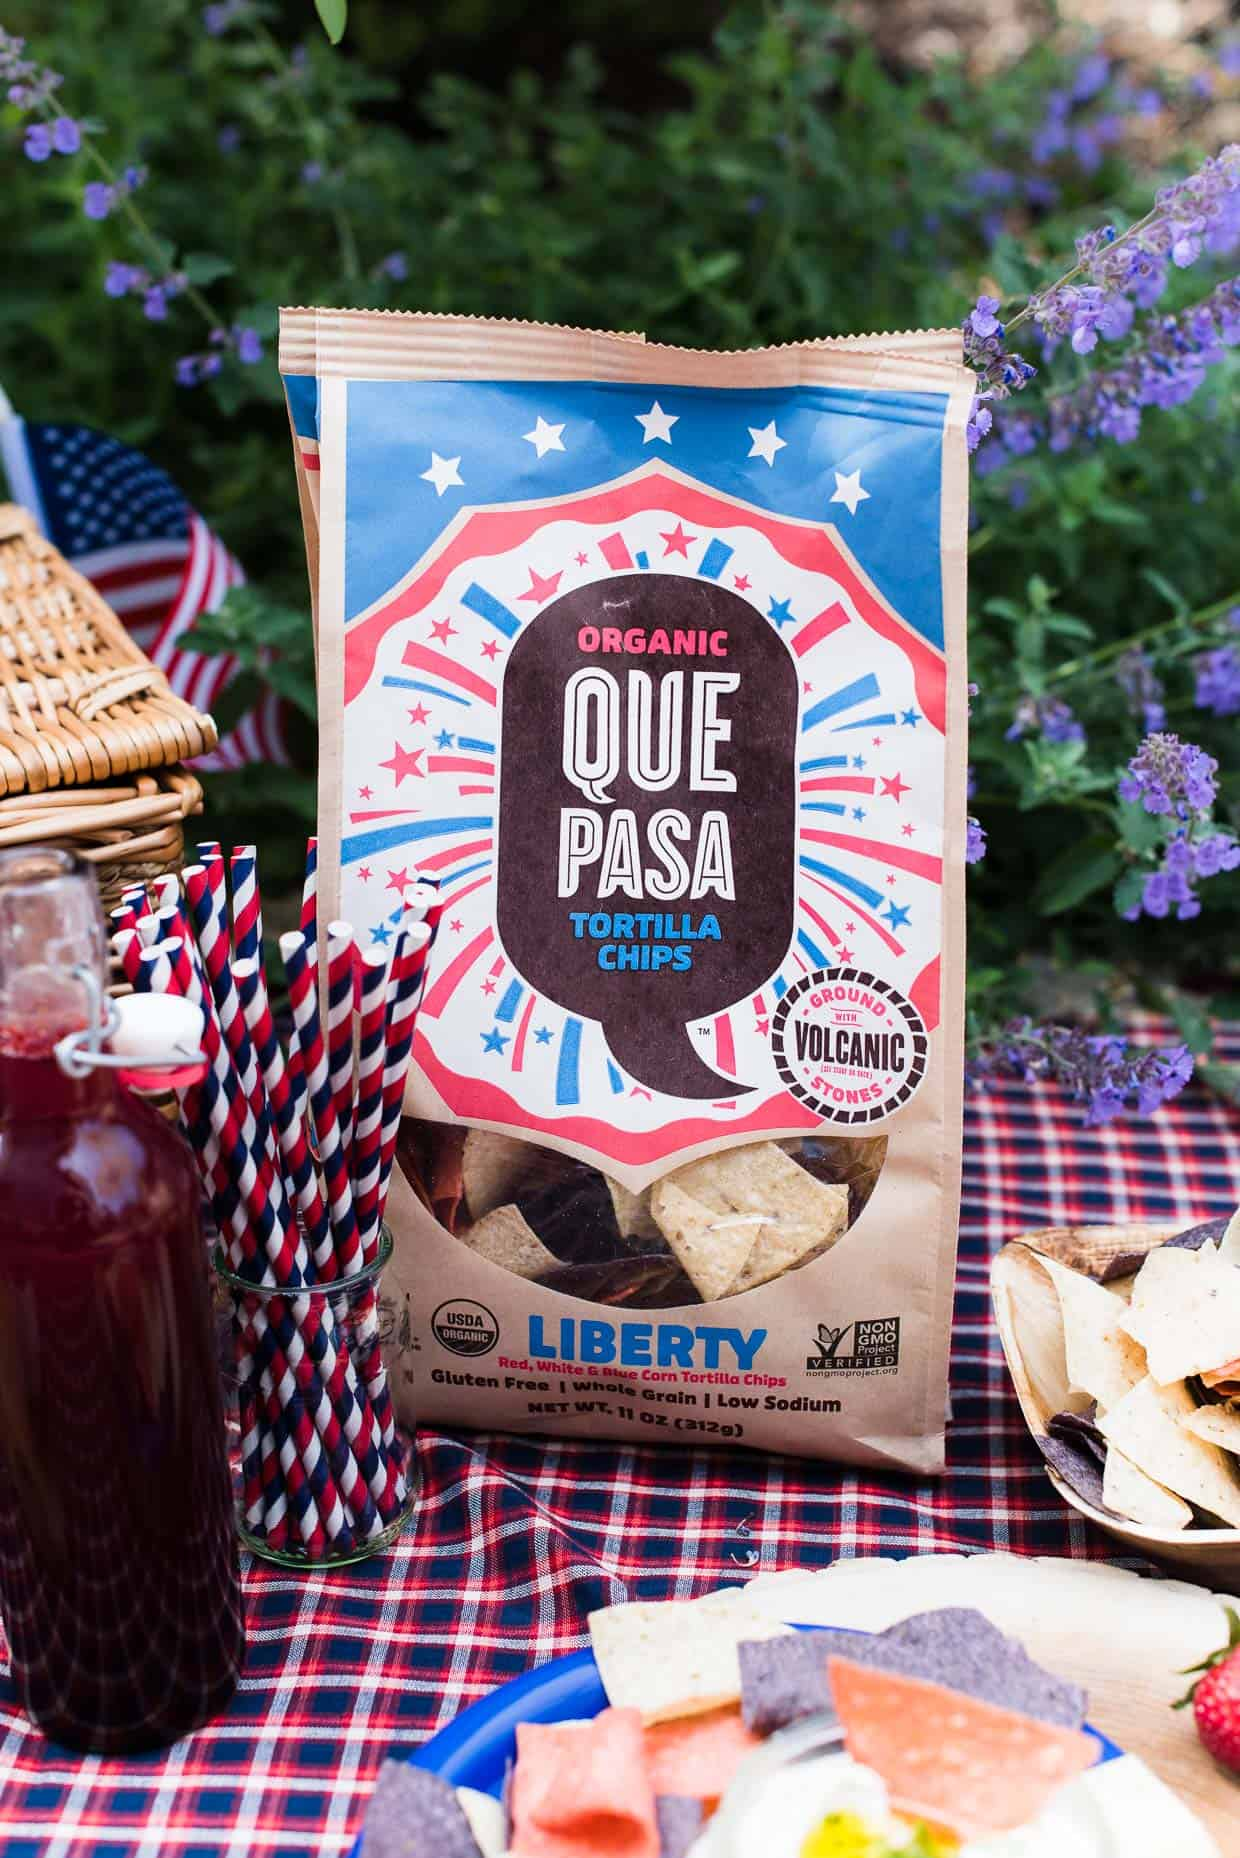 Bag of Que Pasa Liberty Chips for a Red White and Blue Picnic.